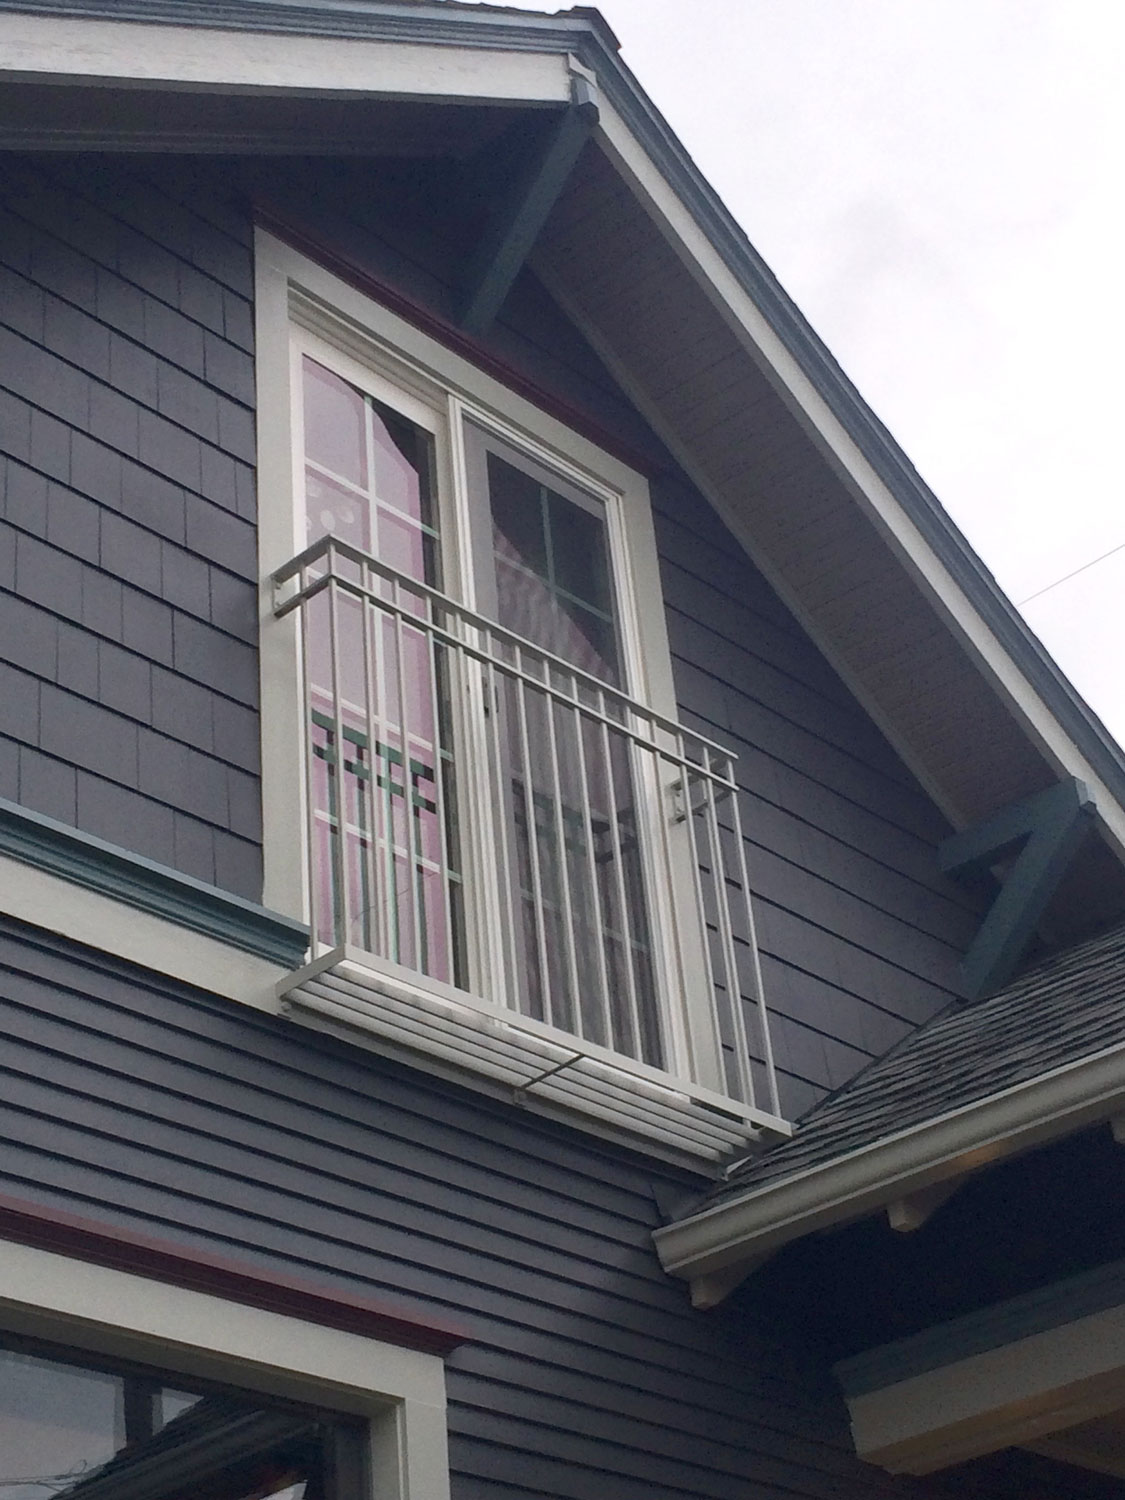 Iron Balcony Guardrail for Second Story Window - Seattle, WA